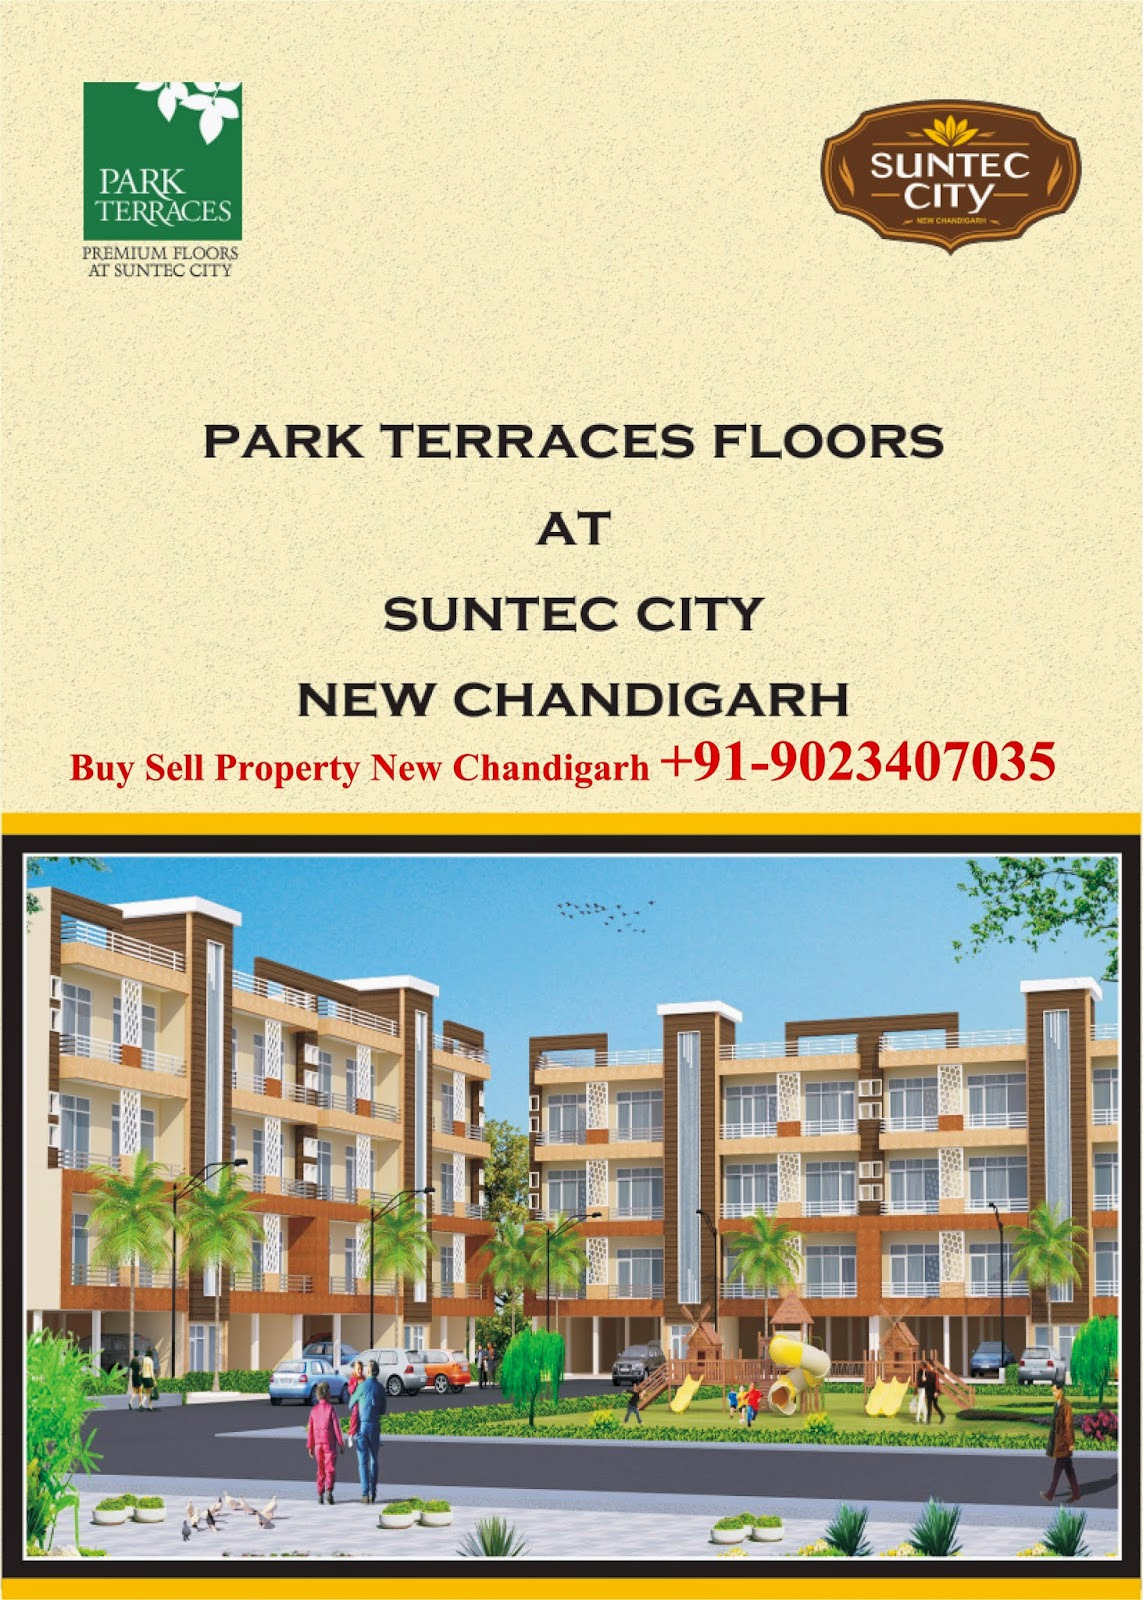 Park Terraces Floors at suntec city Mullanpur new chandigarh, Modern Living Welare Society